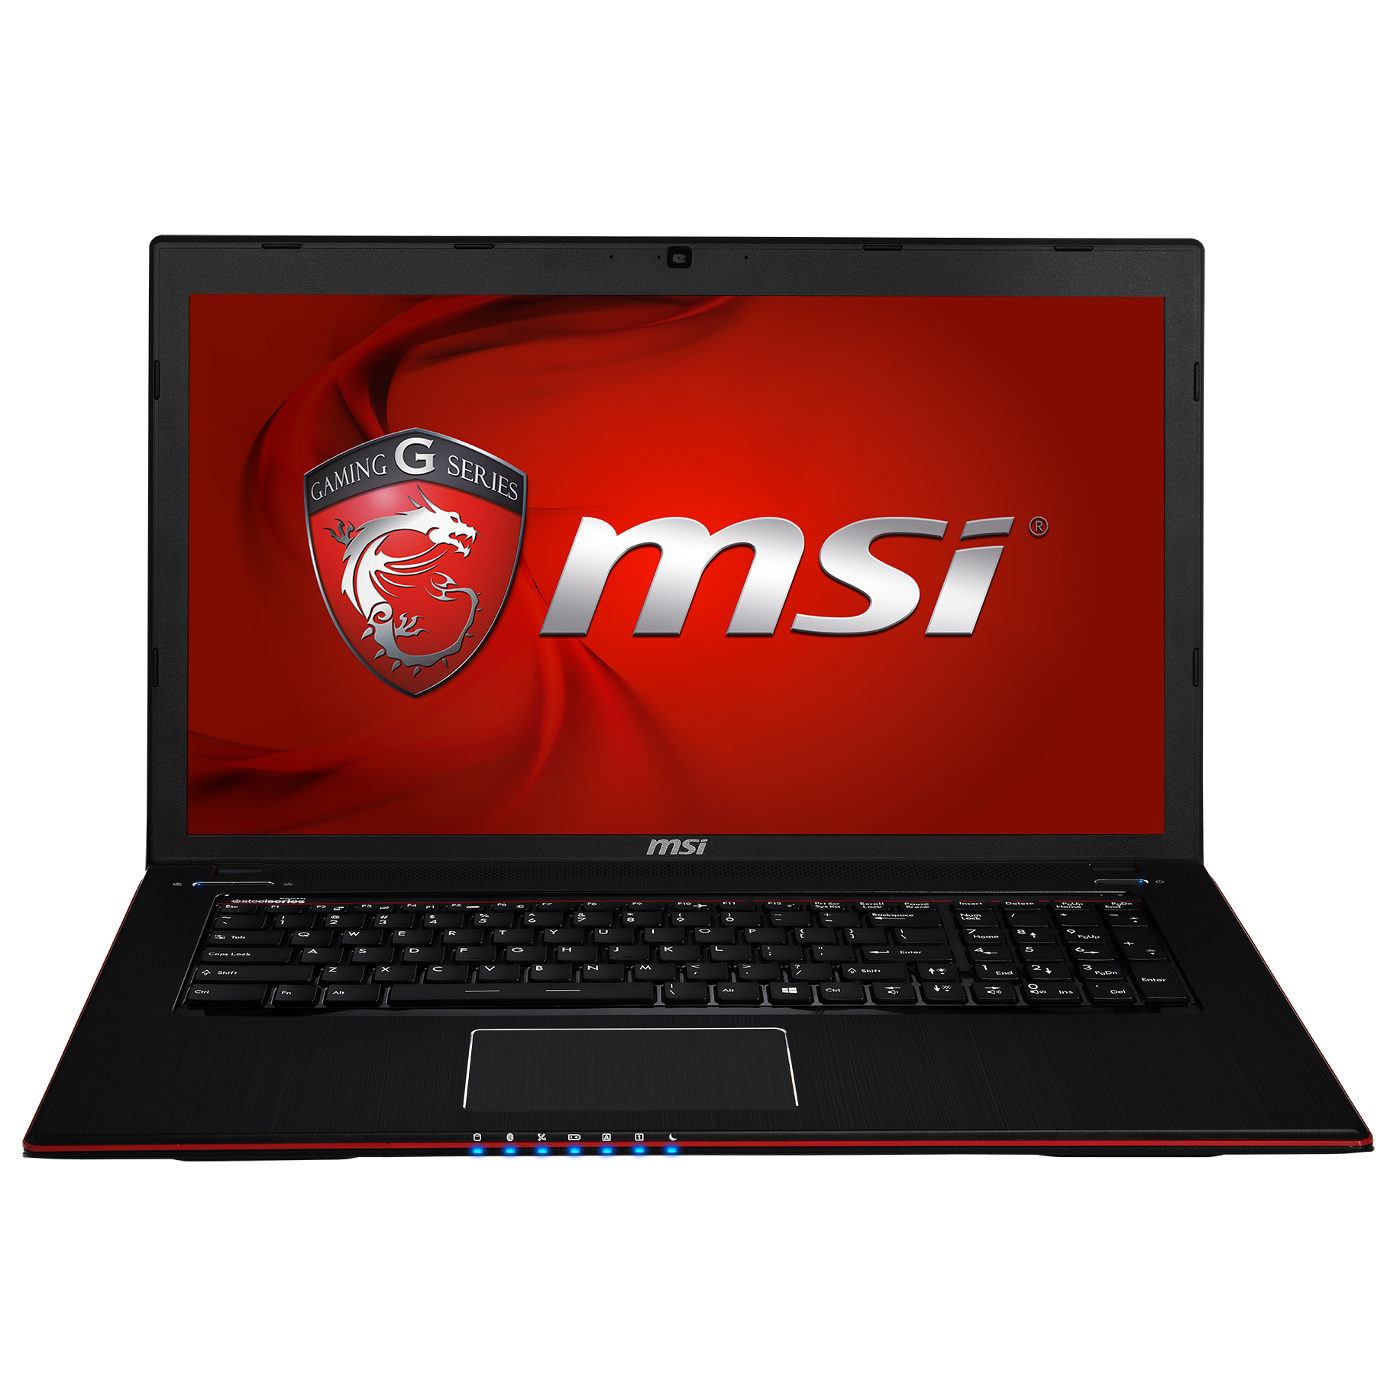 "PC portable MSI GE70 2PL-238XFR Apache Intel Core i5-4200H 4 Go 500 Go 17.3"" LED NVIDIA GeForce GTX 850M Graveur DVD Wi-Fi AC/Bluetooth Webcam FreeDOS (garantie constructeur 1 an)"